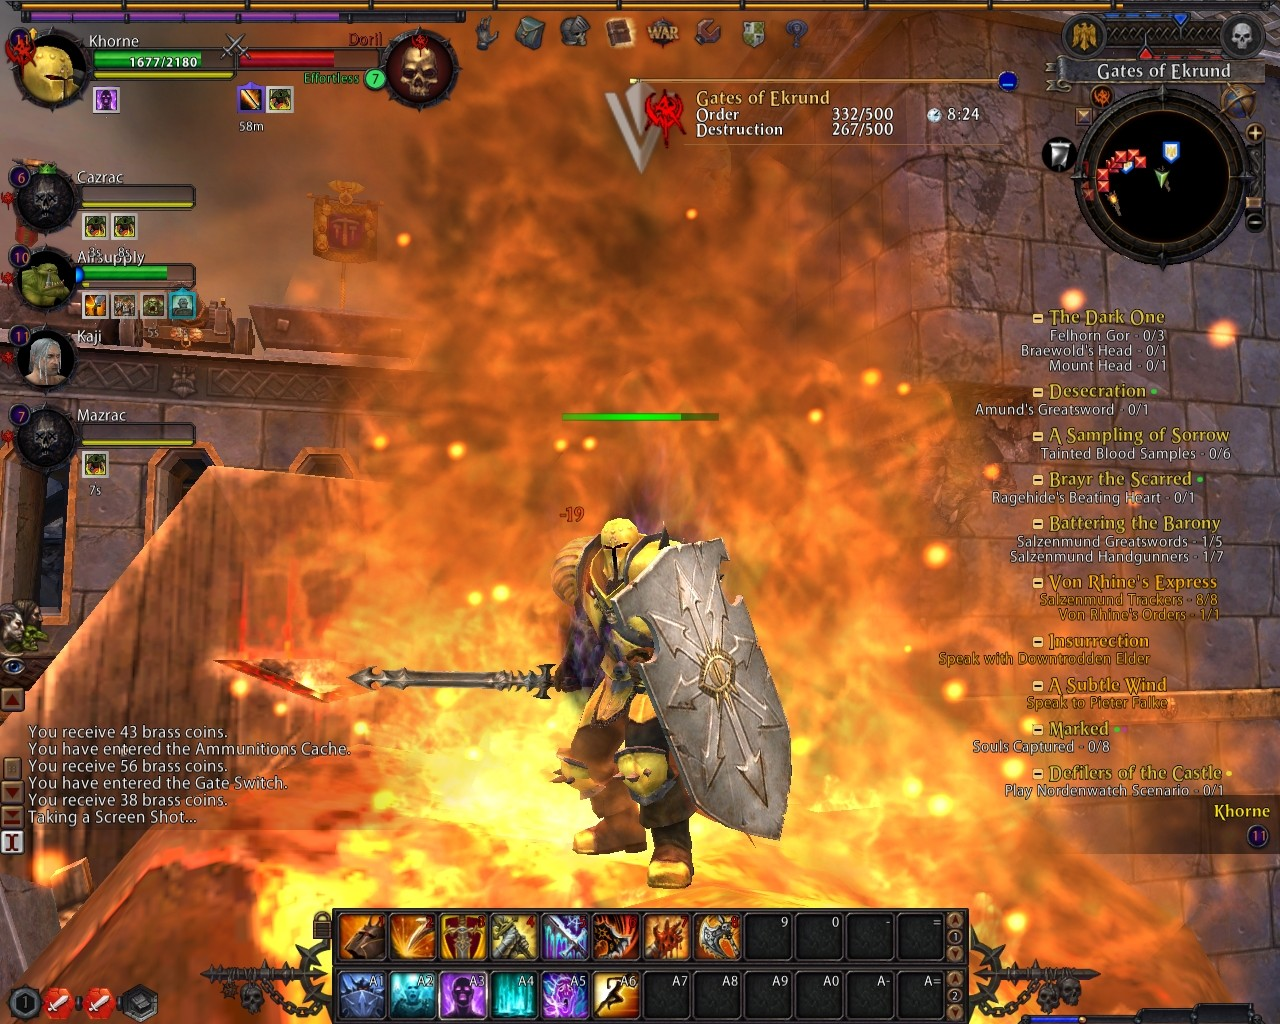 Warhammer Online: Age of Reckoning - The anger of the Blood God is like a fiery inferno.